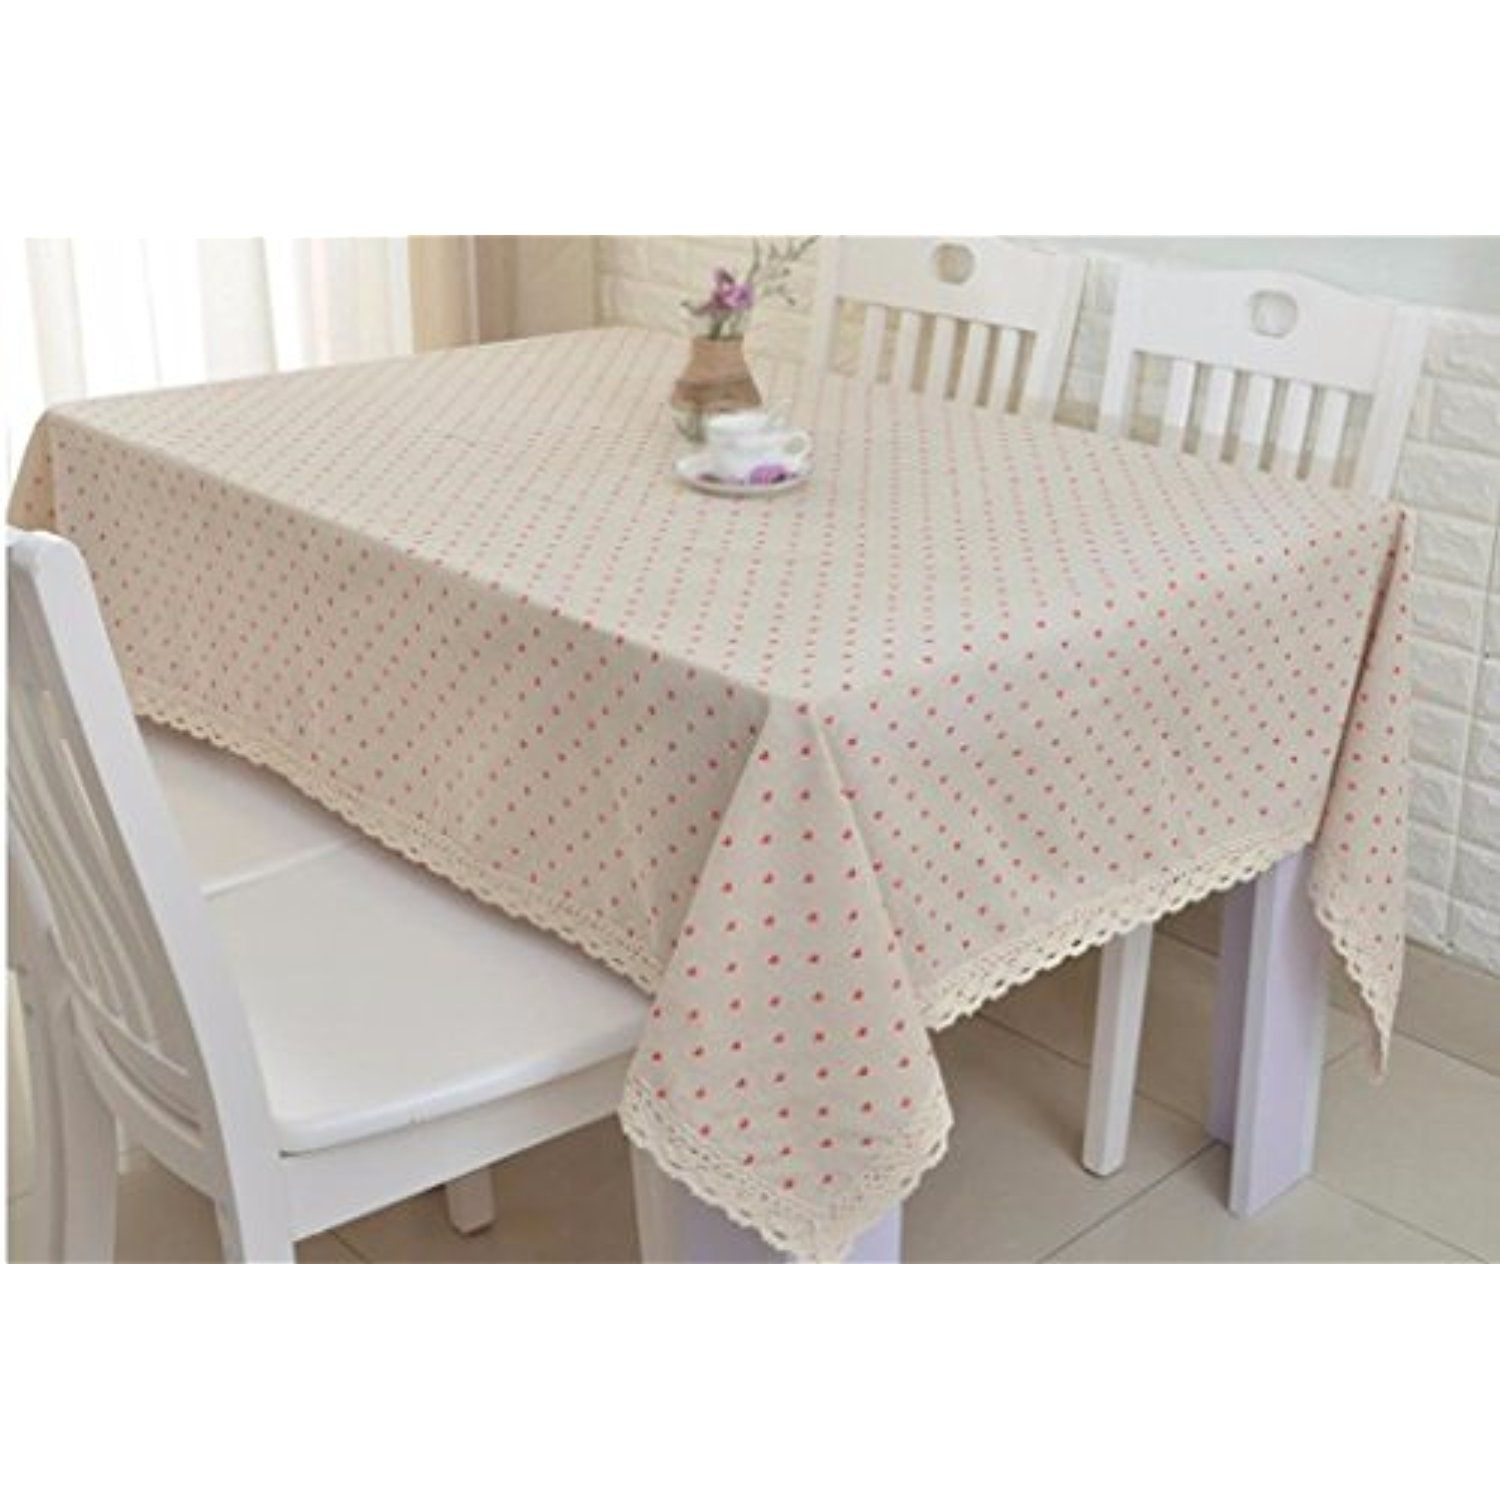 Wfljl European Style Tablecloth Decoration Cotton Dining Table Coffee Table Restaurant Living Room Table Table Cloth Decorations Living Room Table Coffee Table #tablecloth #for #living #room